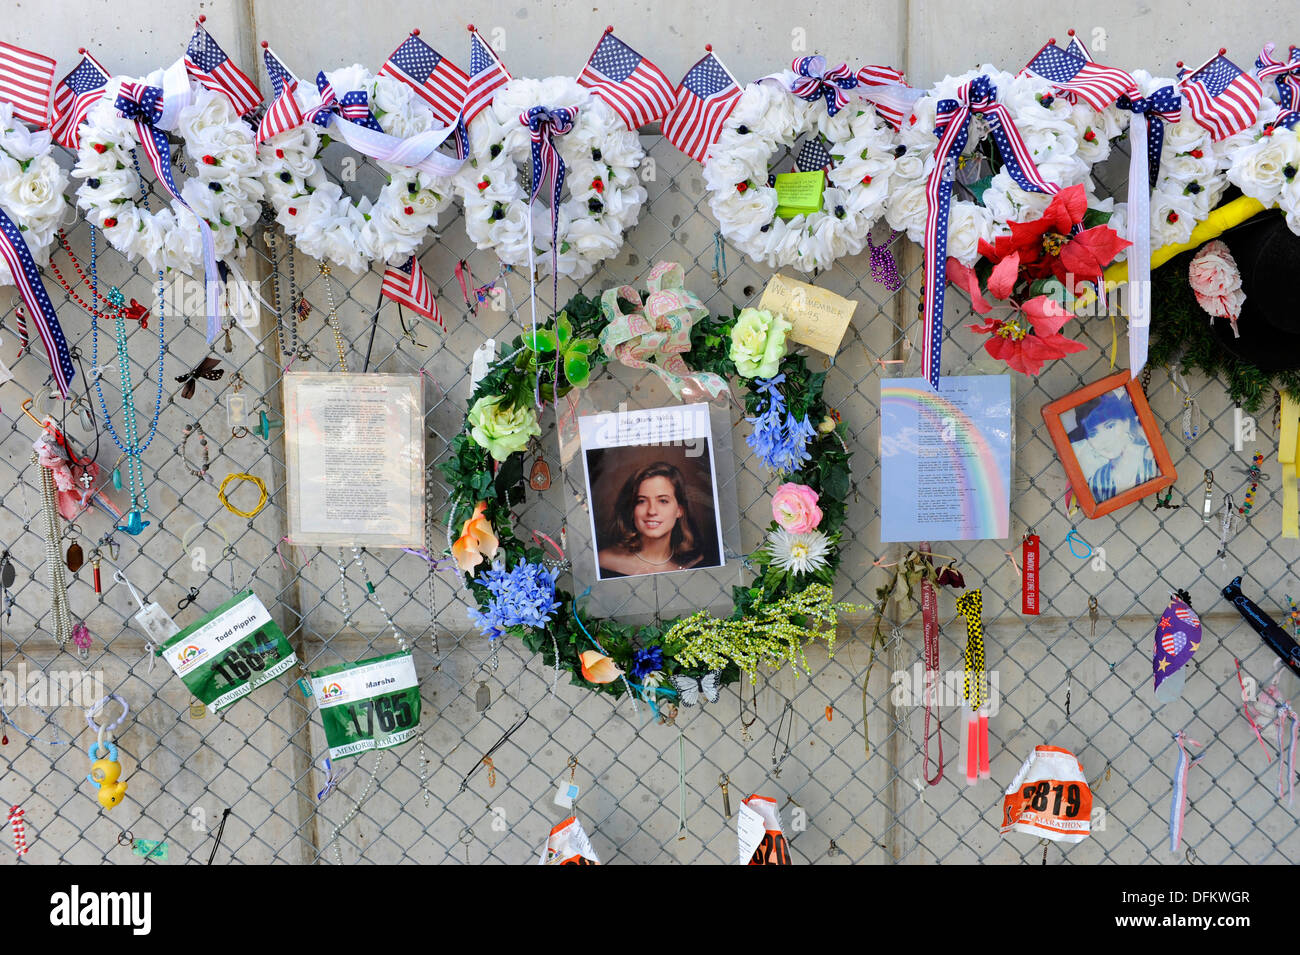 Fence filled with personal remembrances Oklahoma City Bombing Site Alfred P Murrah Building National Memorial Stock Photo